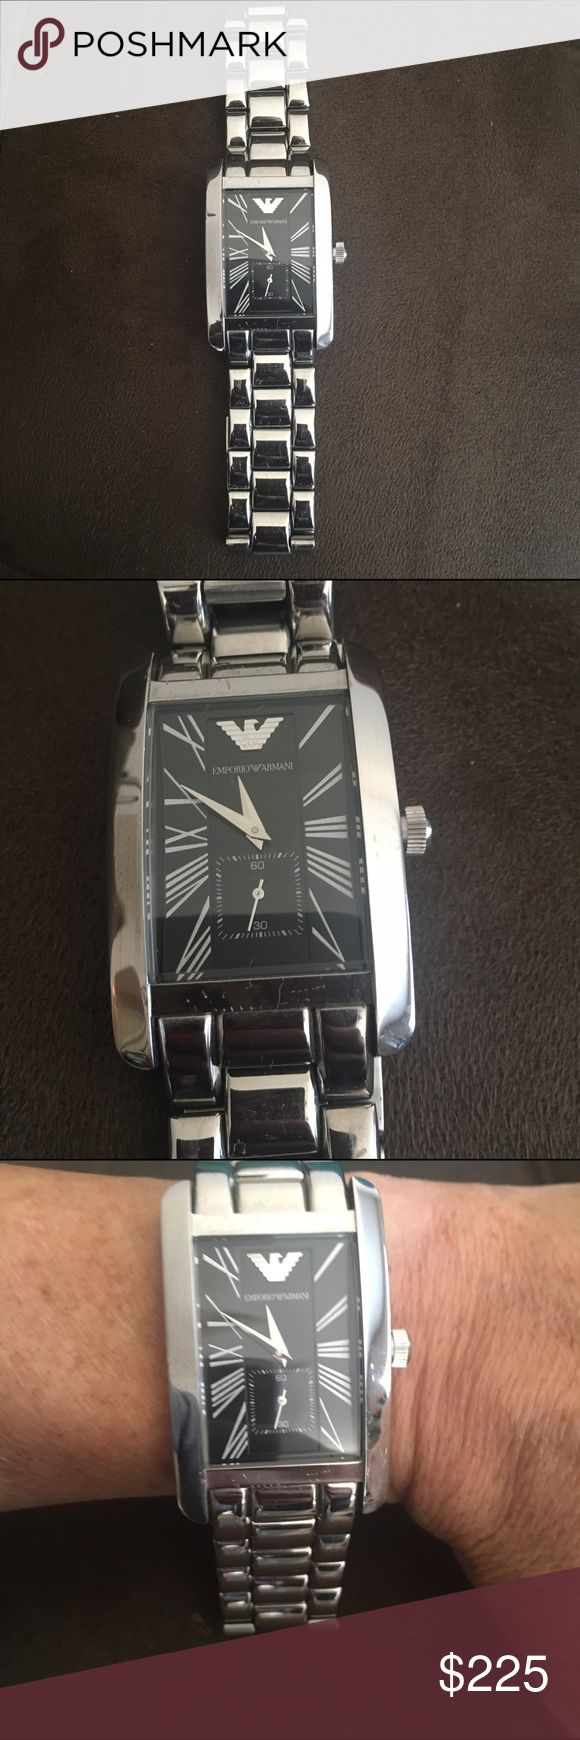 Emporio Armani Mens Watch Emporio Armani Mens Stainless Steel Watch. VERY NICE Emporio Armani Accessories Watches